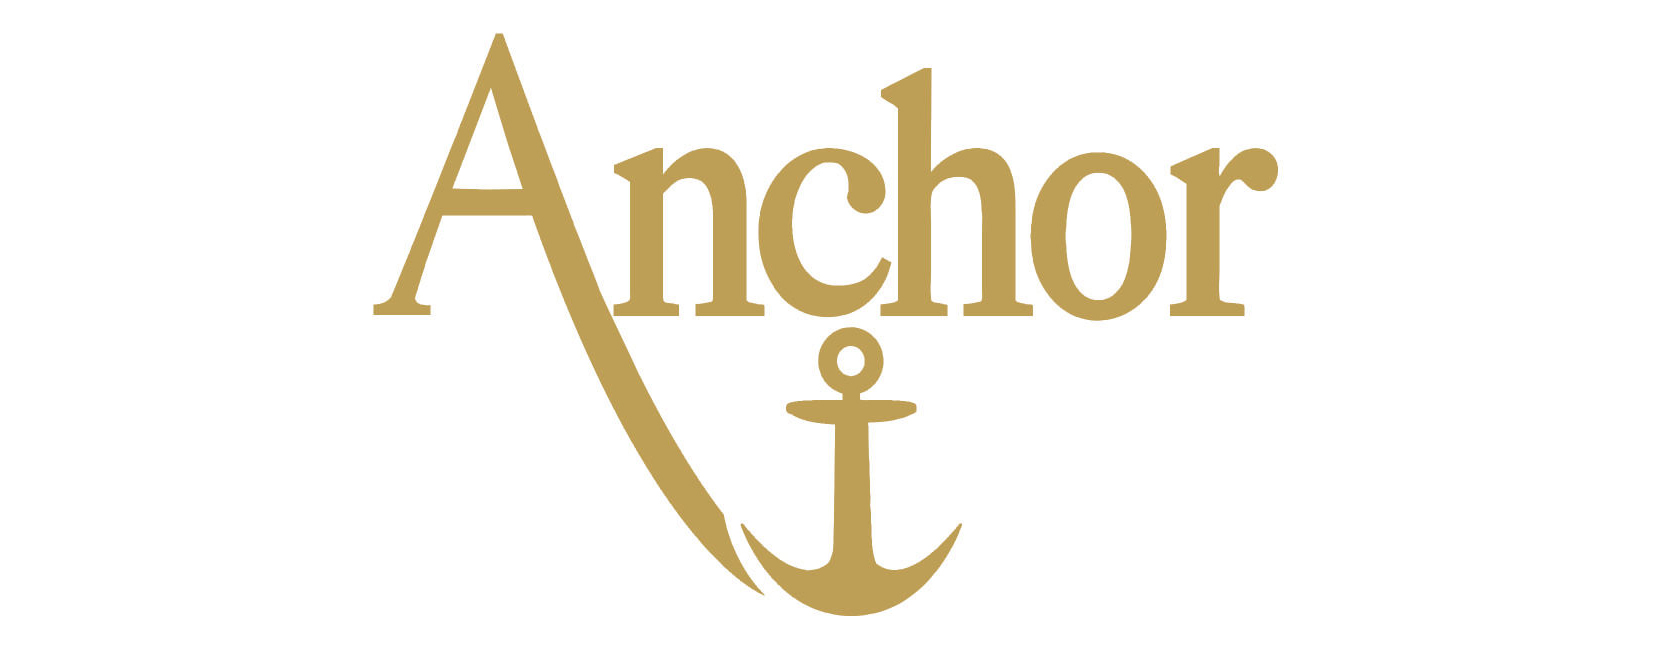 Anchor_SHOPrExCnoKMPtsKo